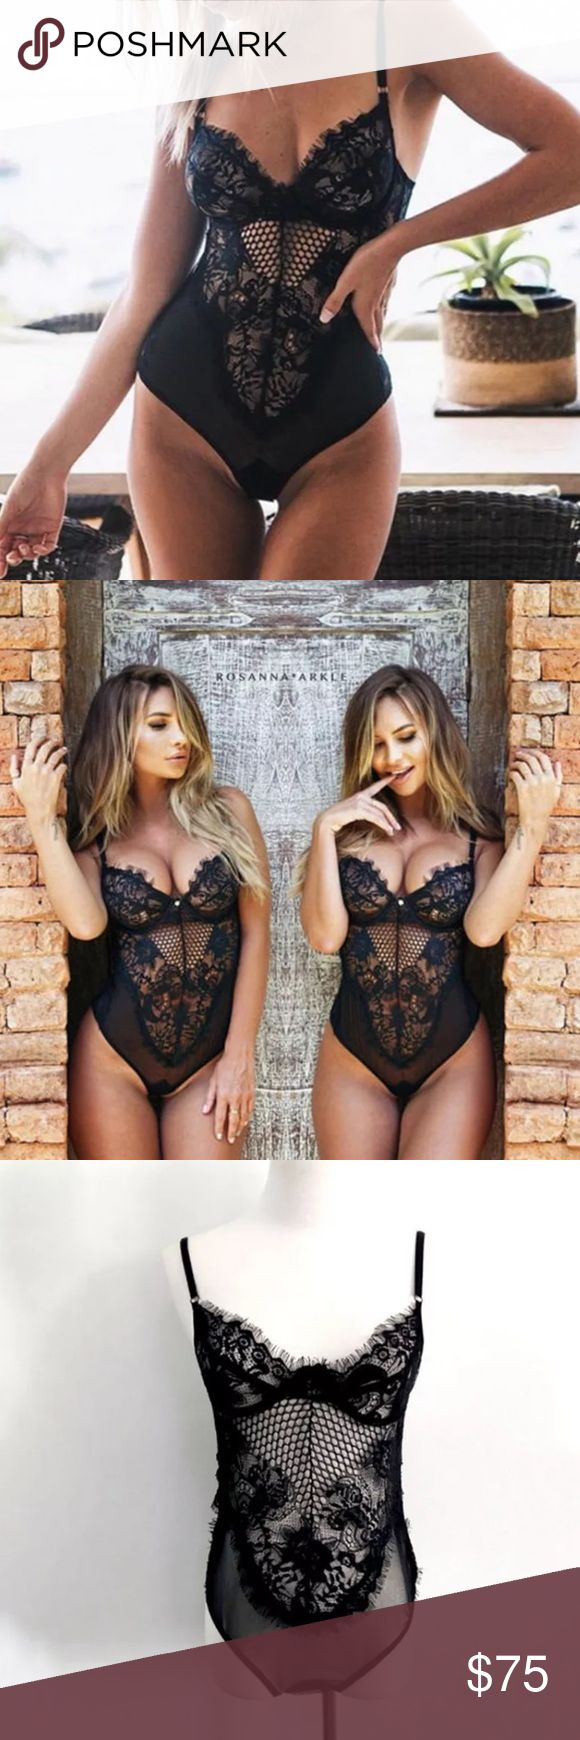 """NWT💕Lacey Black Bodysuit Teddy💕Lingerie💕 Sexy New black lace stretchy body suit. Sexy on its own or underneath a pair of jeans + jacket.                      🎀Small-  bust 30-32"""", waist <27, hips <35""""         🎀Med- Bust 32-34"""", waist 28-29"""", hips 35-37"""" 🎀Large- B 34-37"""", W 28-30"""", H 37-39"""".             🎀XLarge- B 37-340"""", W 30-33"""", H 39-42"""".                      Sorry 🚫trades. Cheaper with bundling. Pls ensure sizing is your fit, return not accepted🙅on these items. Intimates…"""